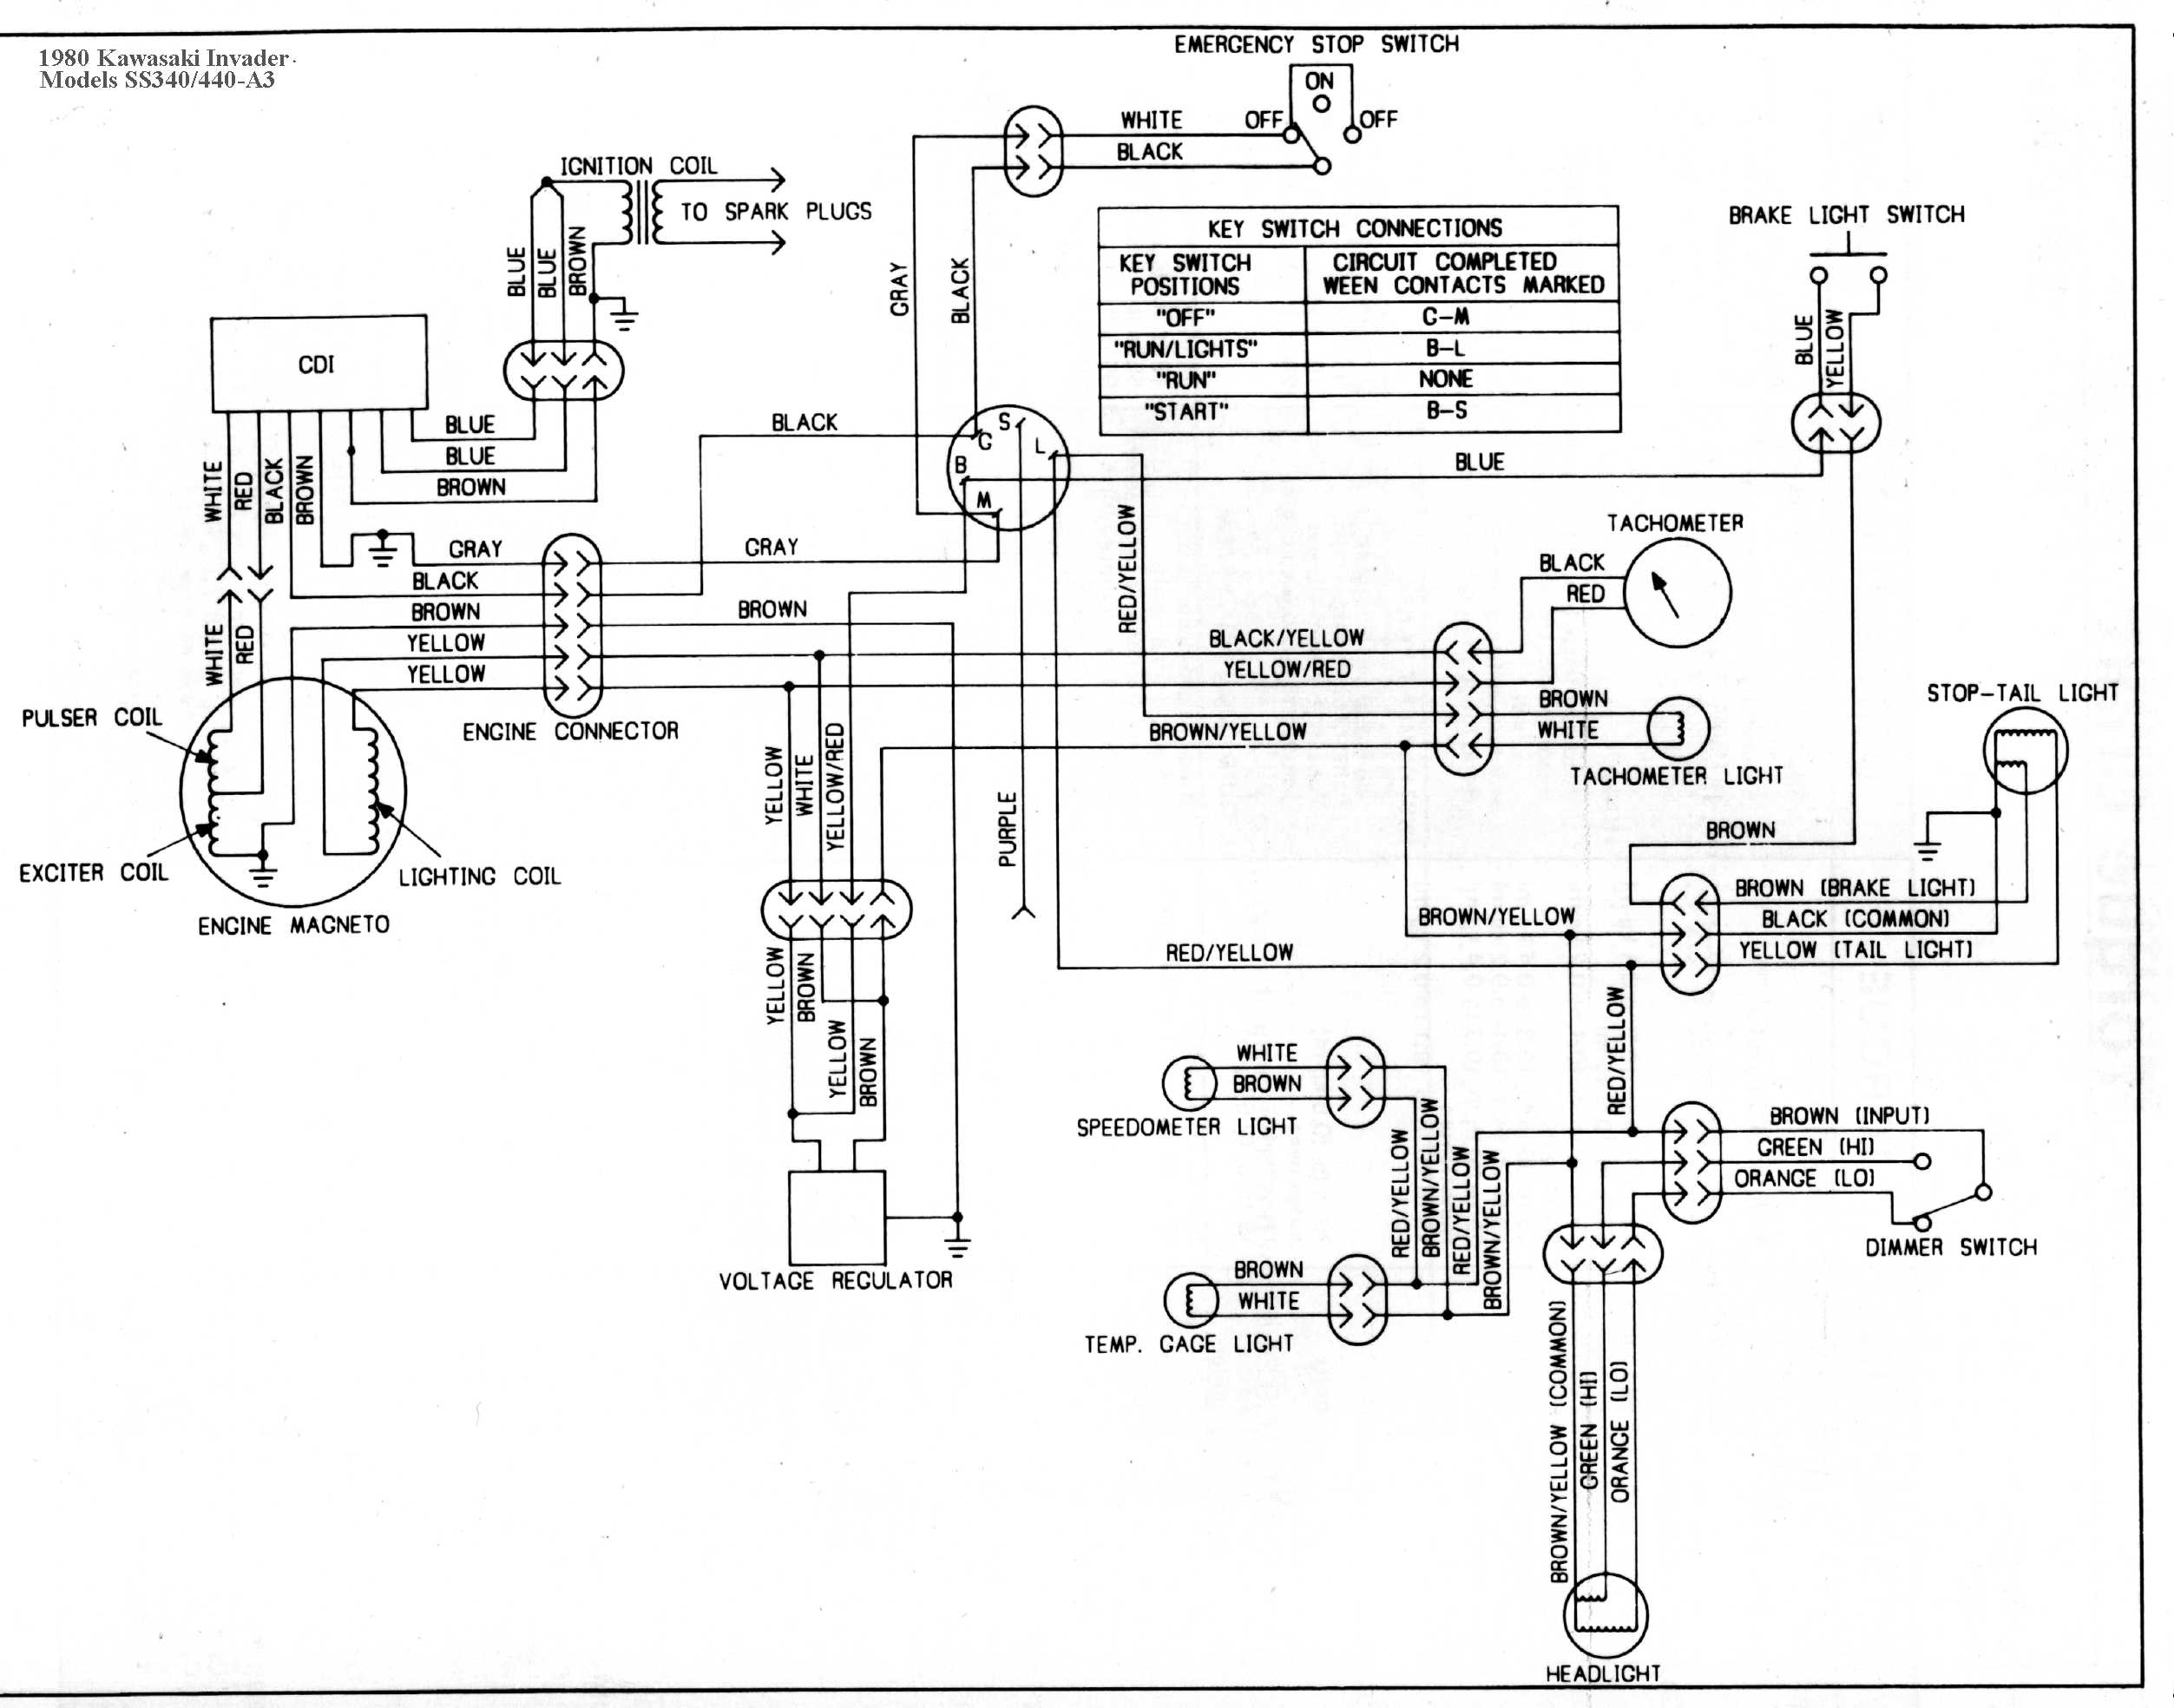 ss340a3 kawasaki invader snowmobile wiring diagrams 1980 Kawasaki KZ750 Wiring-Diagram at webbmarketing.co